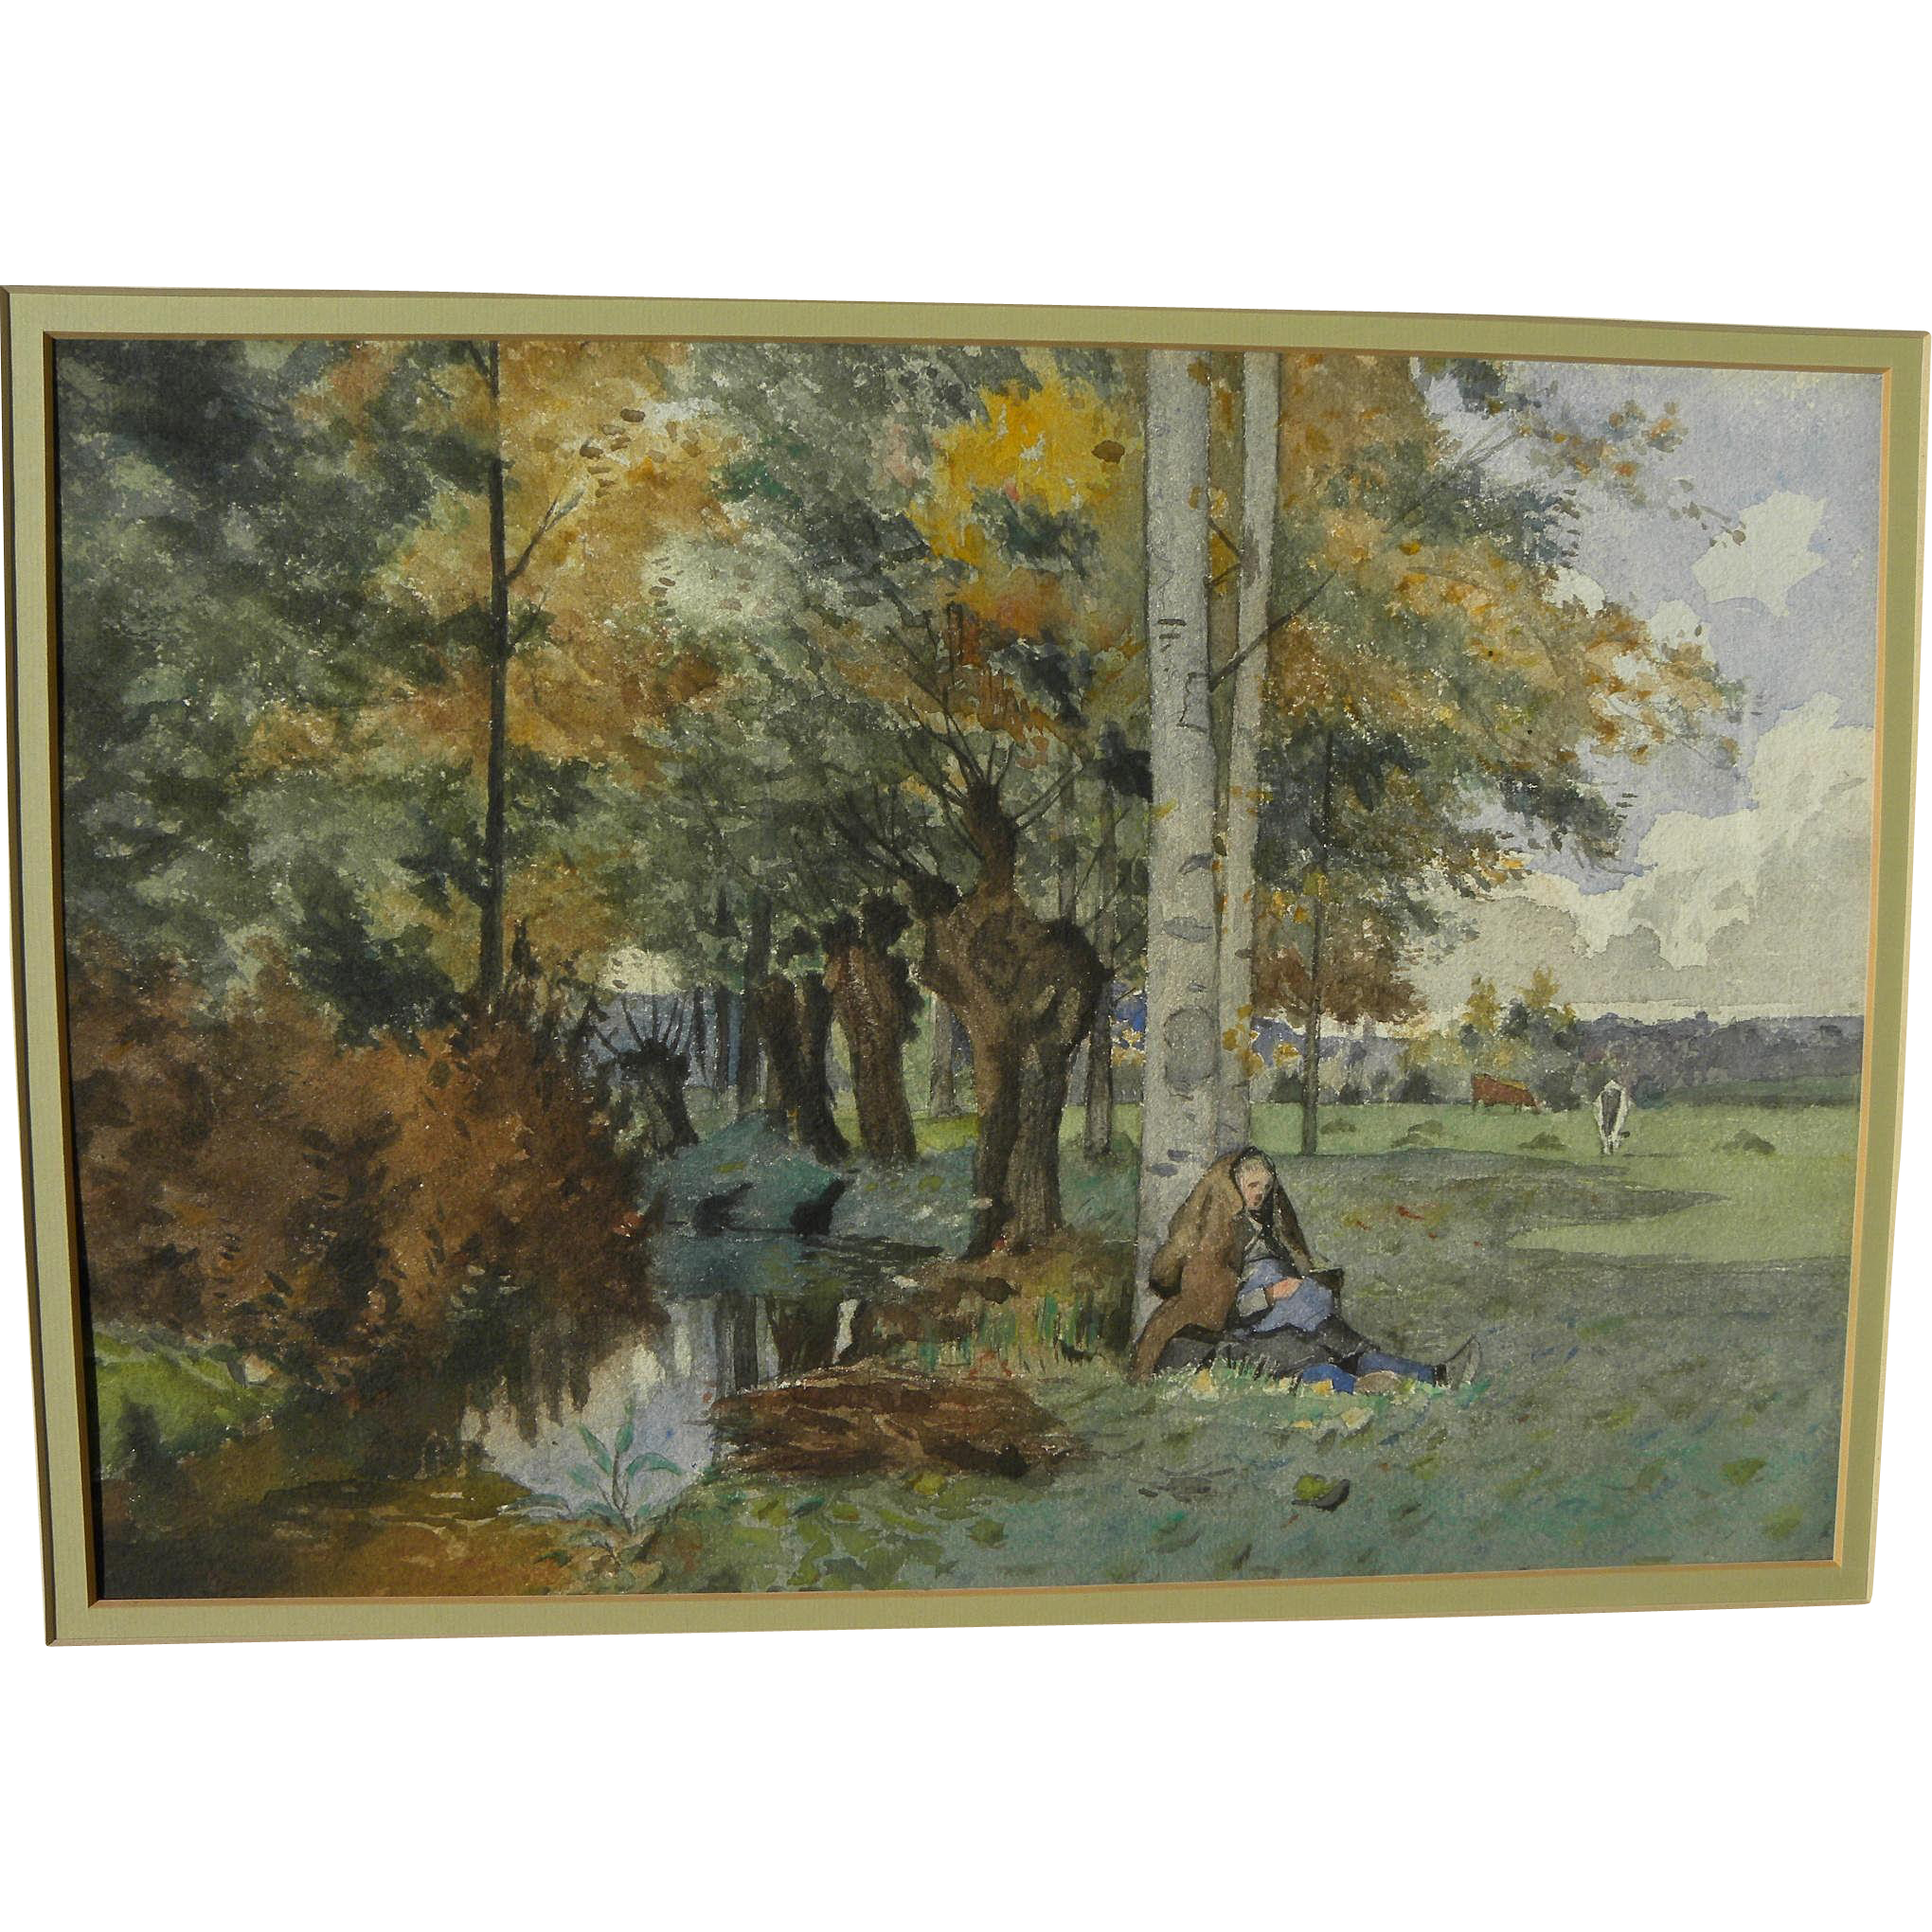 19th century European watercolor painting of a lady in a rural landscape